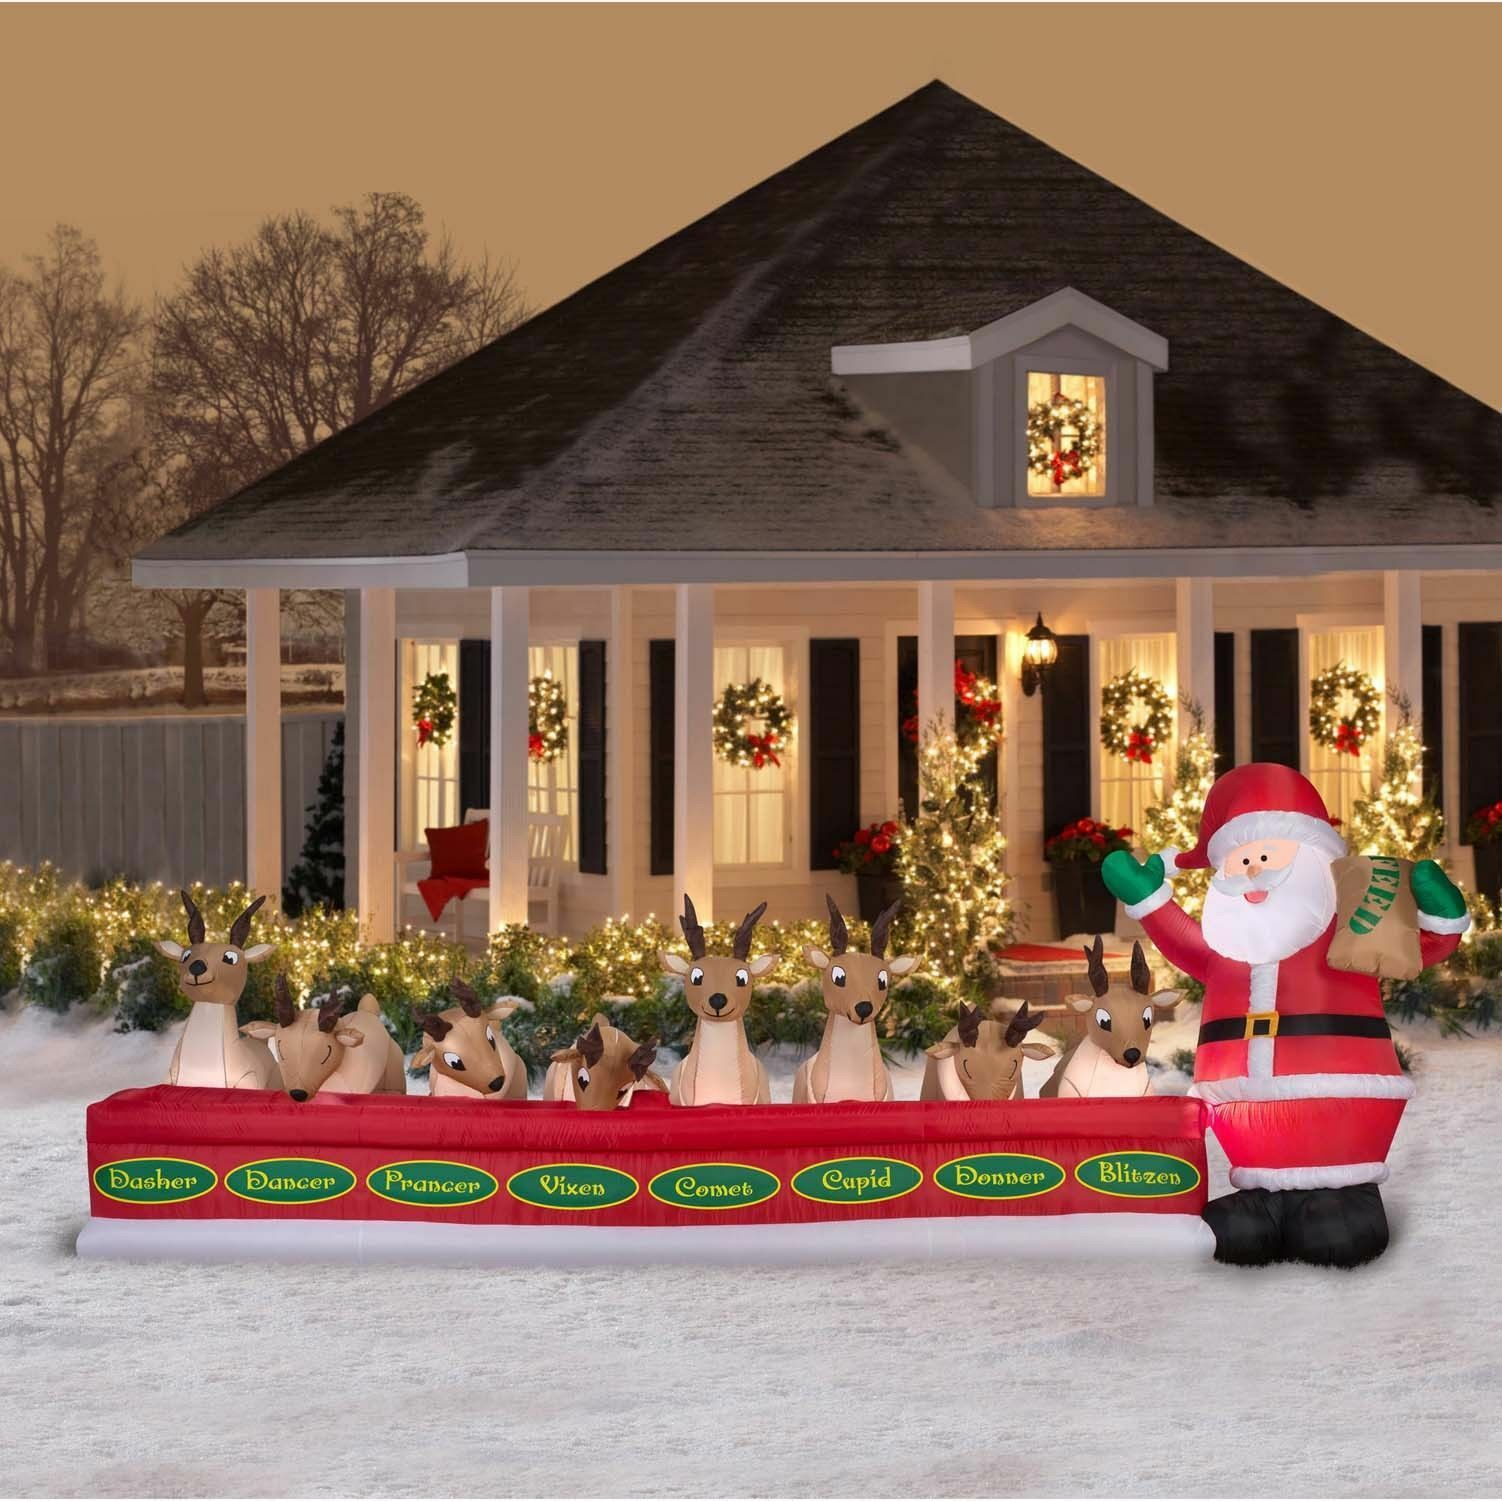 16.5' Wide Christmas Animated Inflatable Santa Feeding Reindeer Holiday Decor